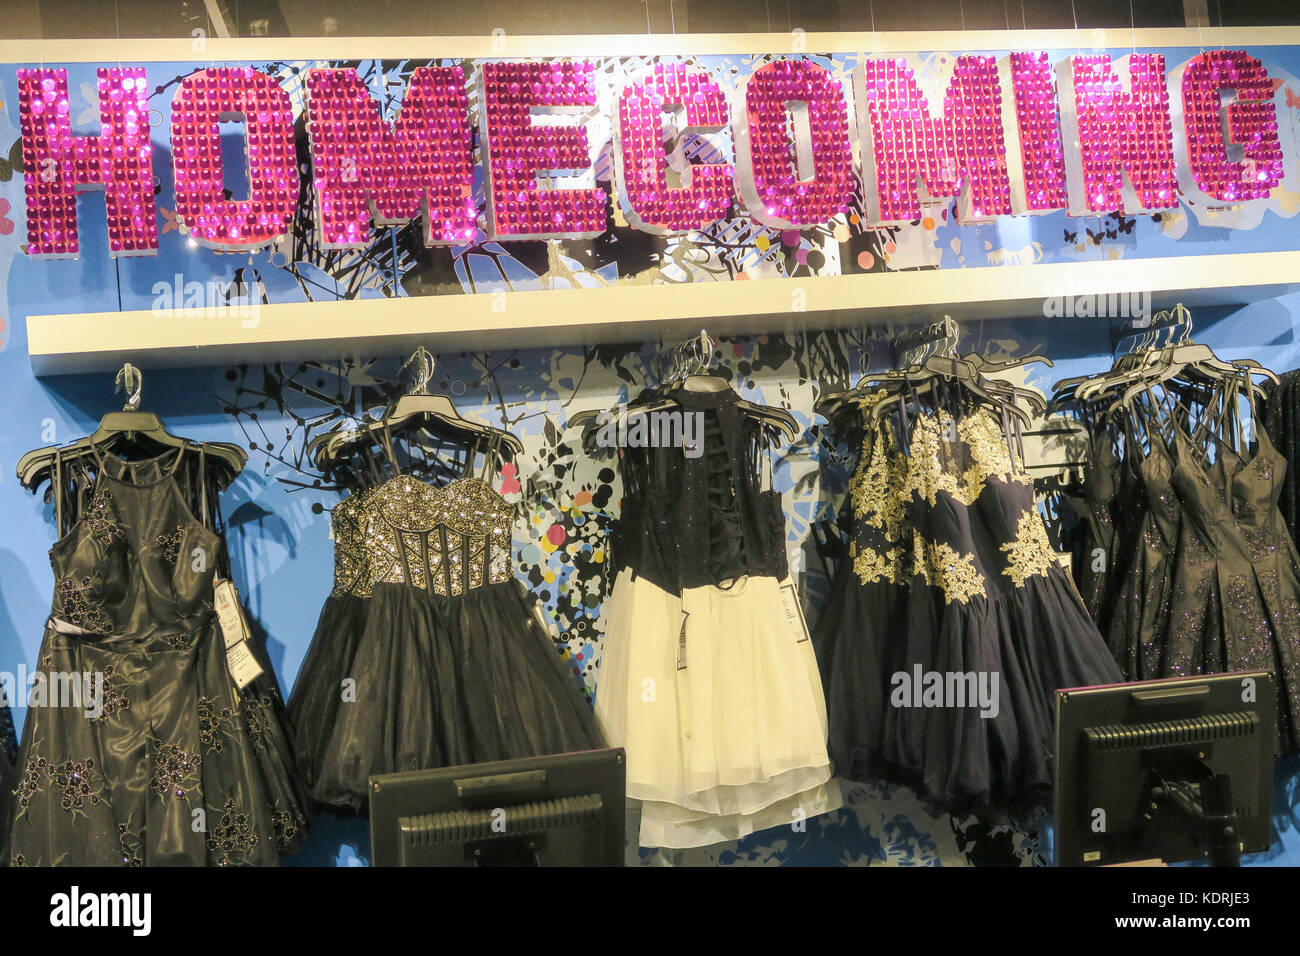 Prom Dresses Shop Stock Photos & Prom Dresses Shop Stock Images - Alamy